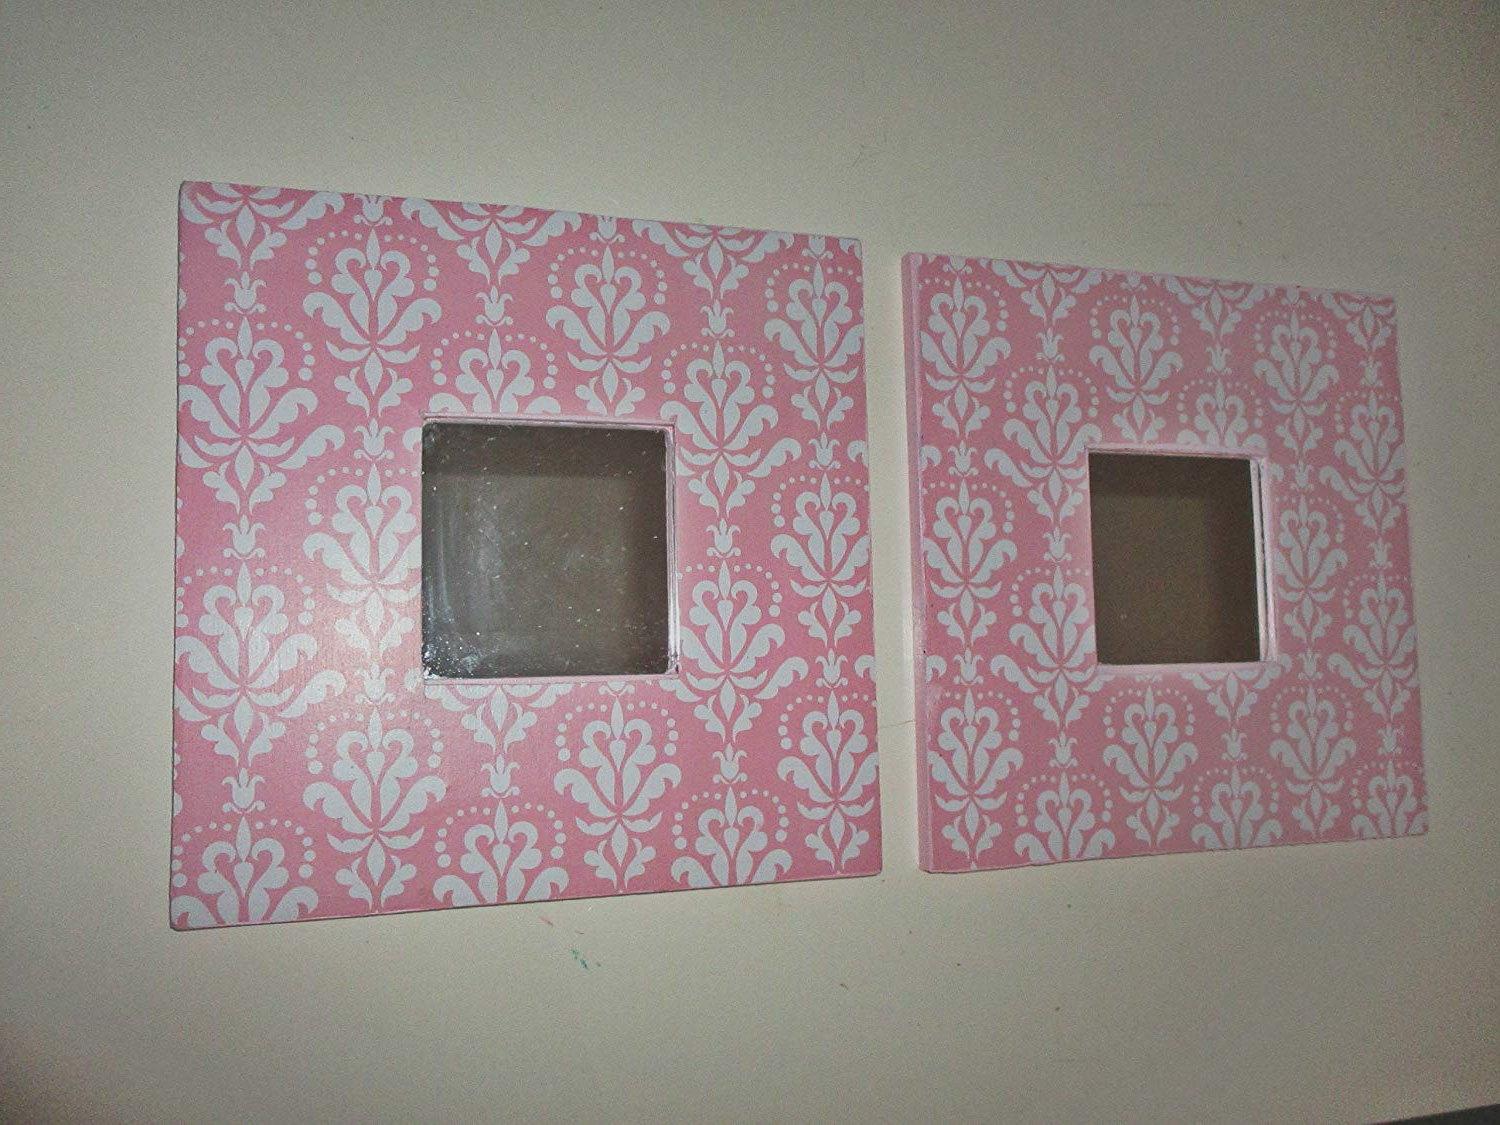 Childrens Wall Mirrors Throughout Well Known Amazon: Small Wall Mirrors, Nursery Room, Childrens Room, Pink (View 20 of 20)